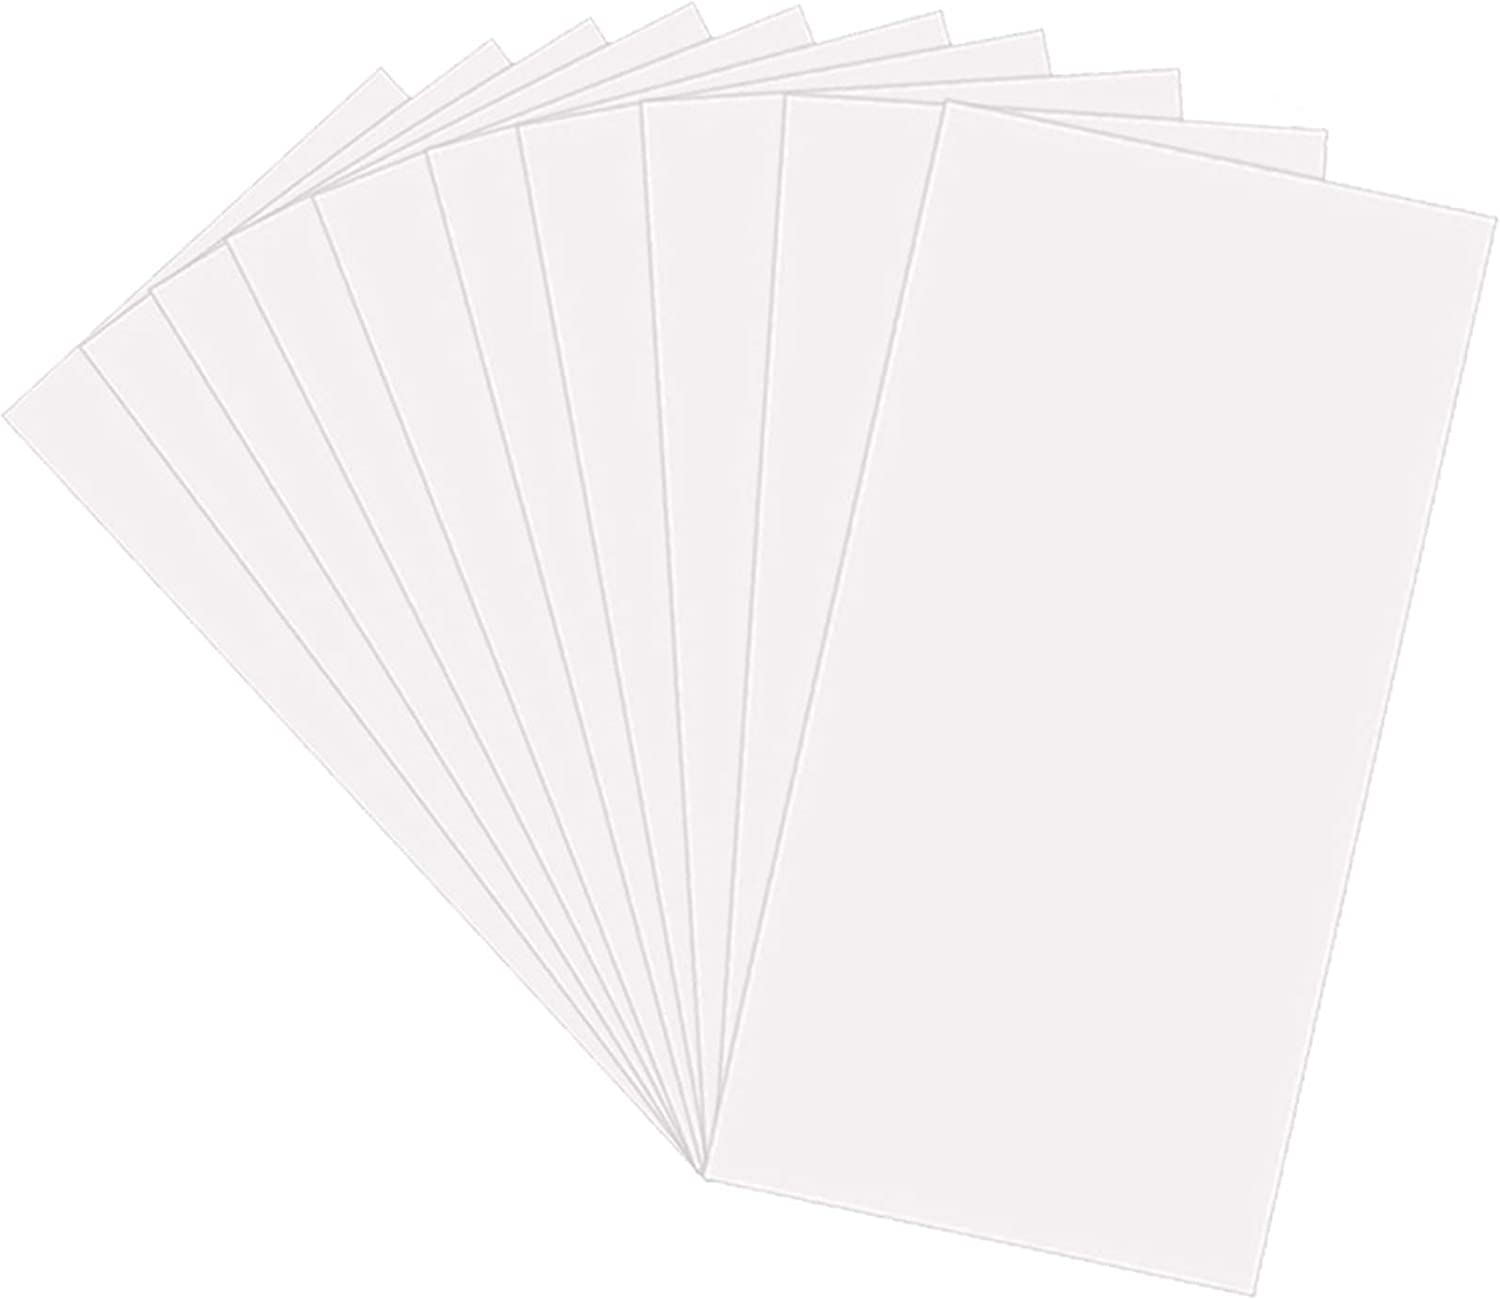 Make Your Own Stencil Compatible Vinyl Cutting Machine 25 Pack 4 Mil CLEAR Mylar Stencil Sheets 12 x 24 Blank Stencils Reusable Template Material